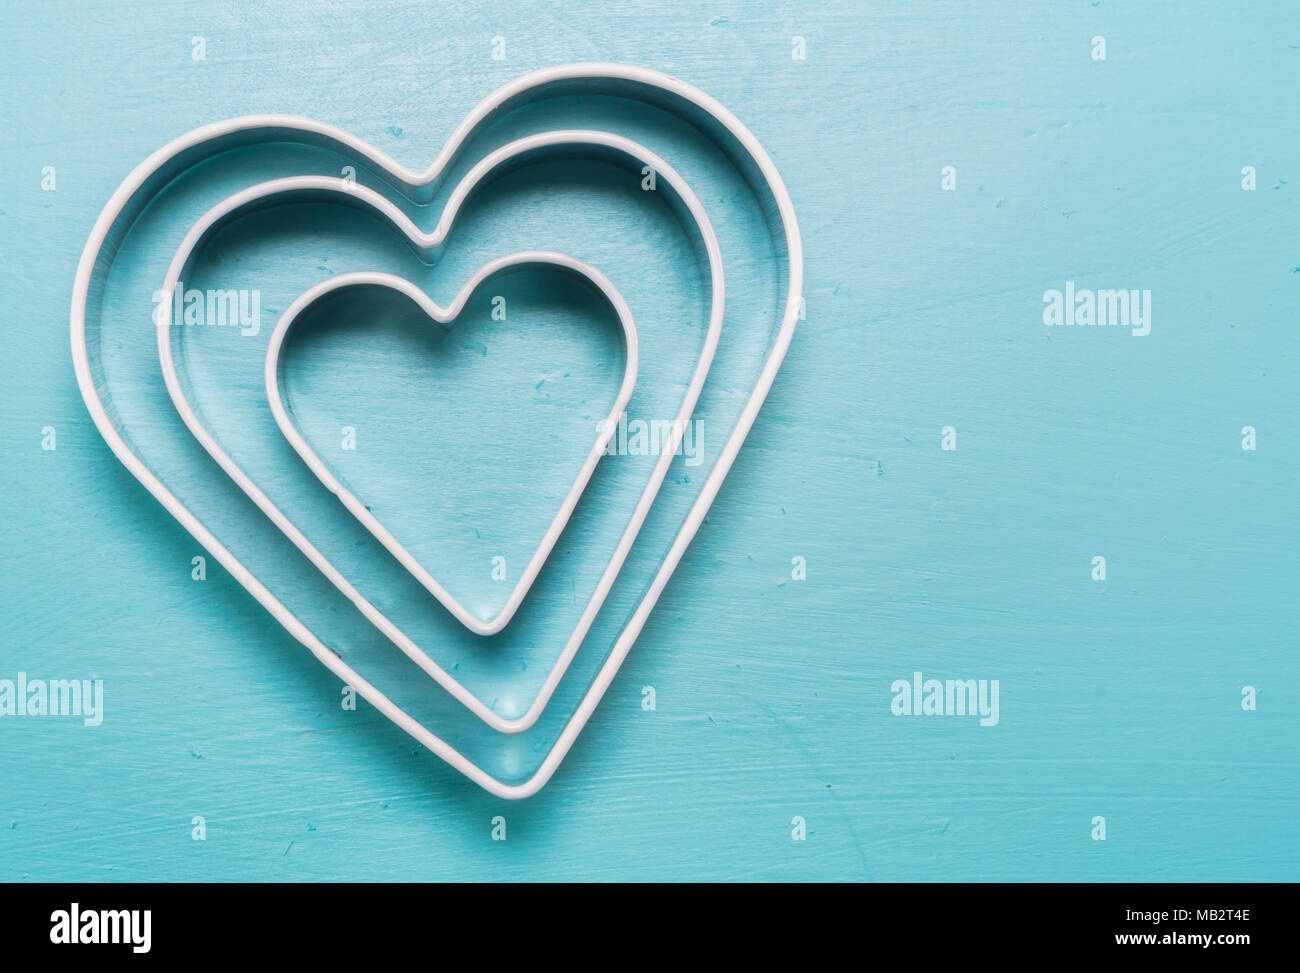 Three Heart Cookie Cutters With Copy Space to right - Stock Image